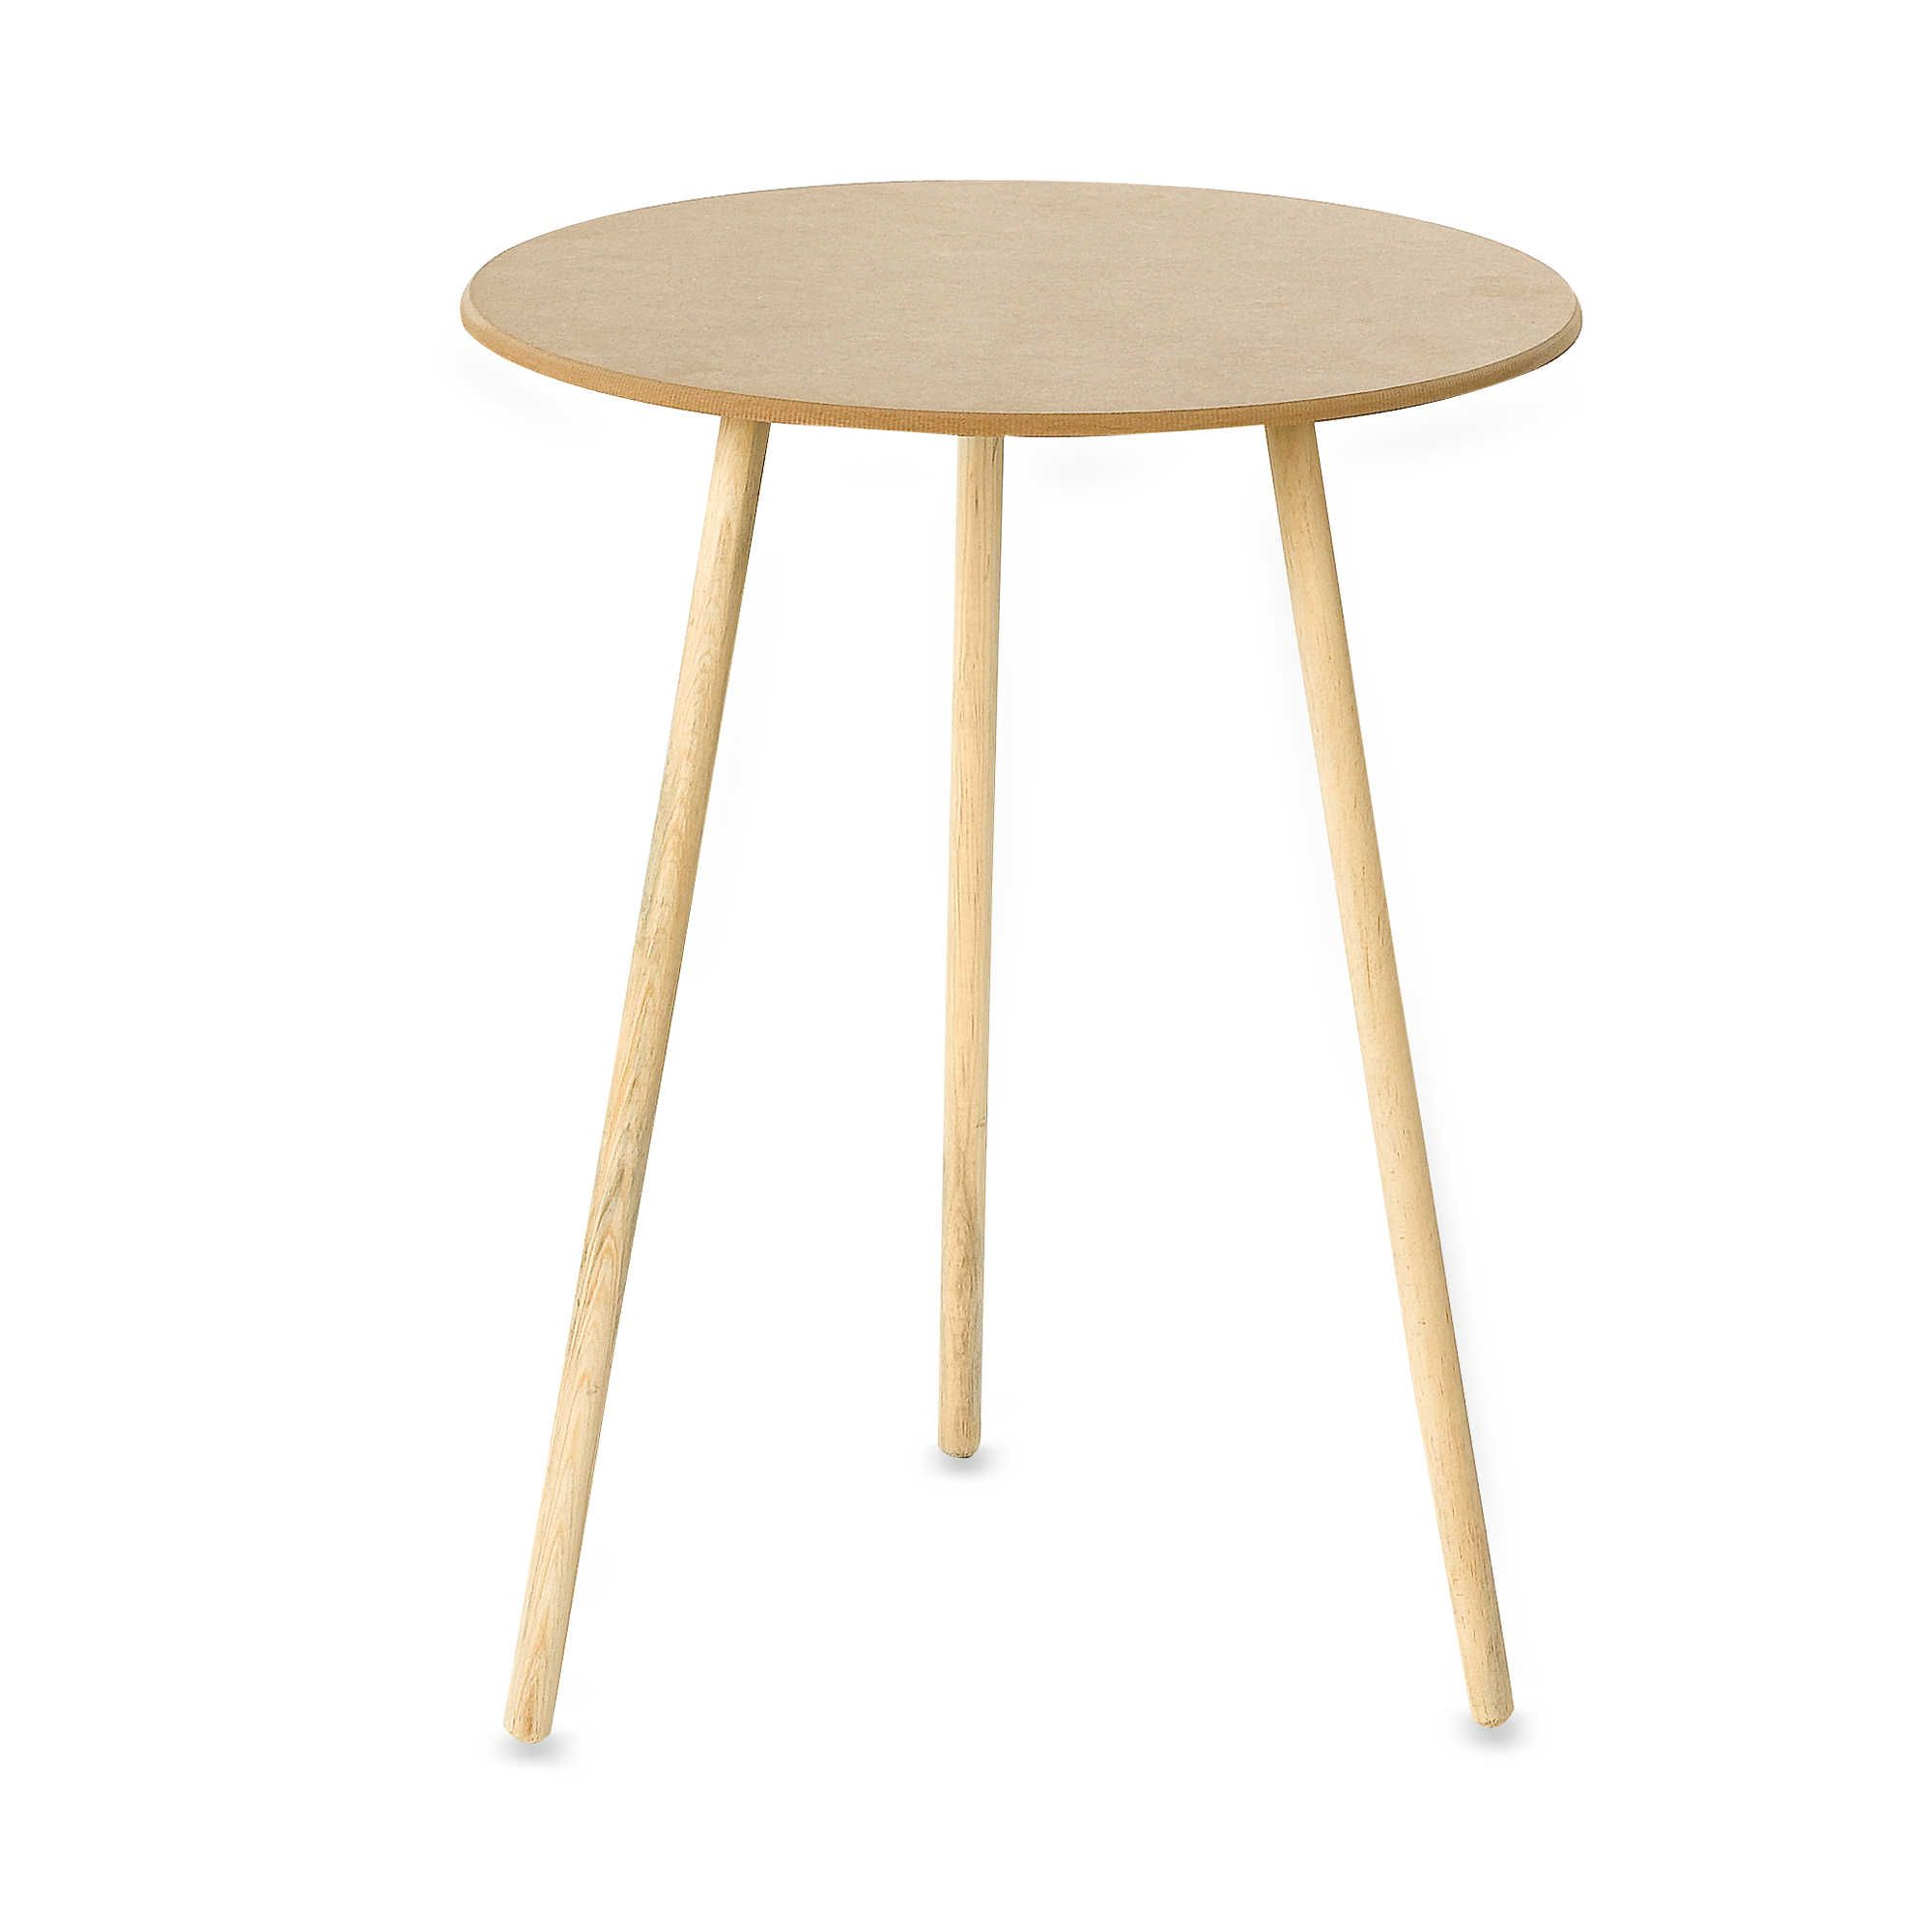 inch round decorator table new room decor accent cloth small garden furniture sets white drum coffee pier one credit card login with mirror cottage style console mini lamp home